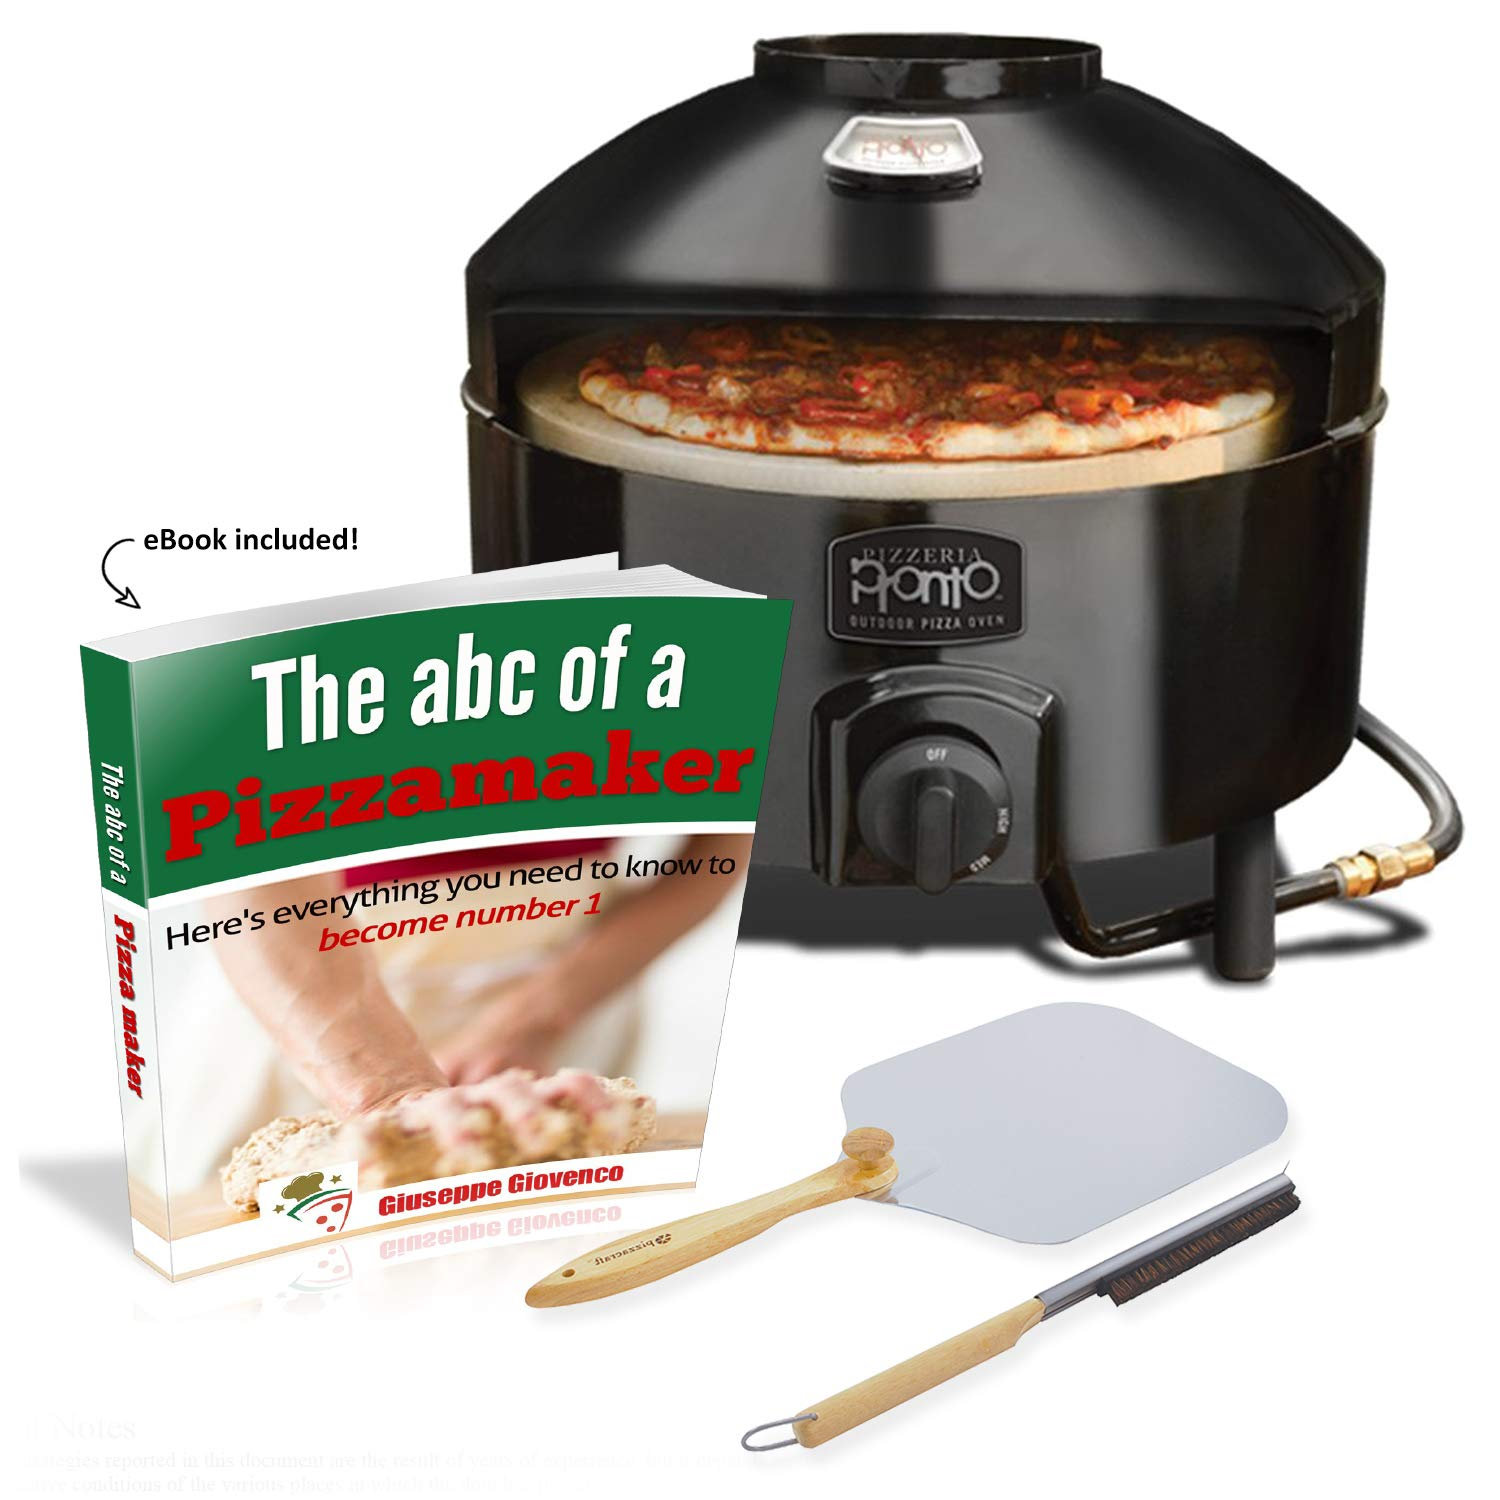 Pizzacraft Pronto Outdoor Pizza Oven with Brush and Peel. eBook Included! by Pizzacraft